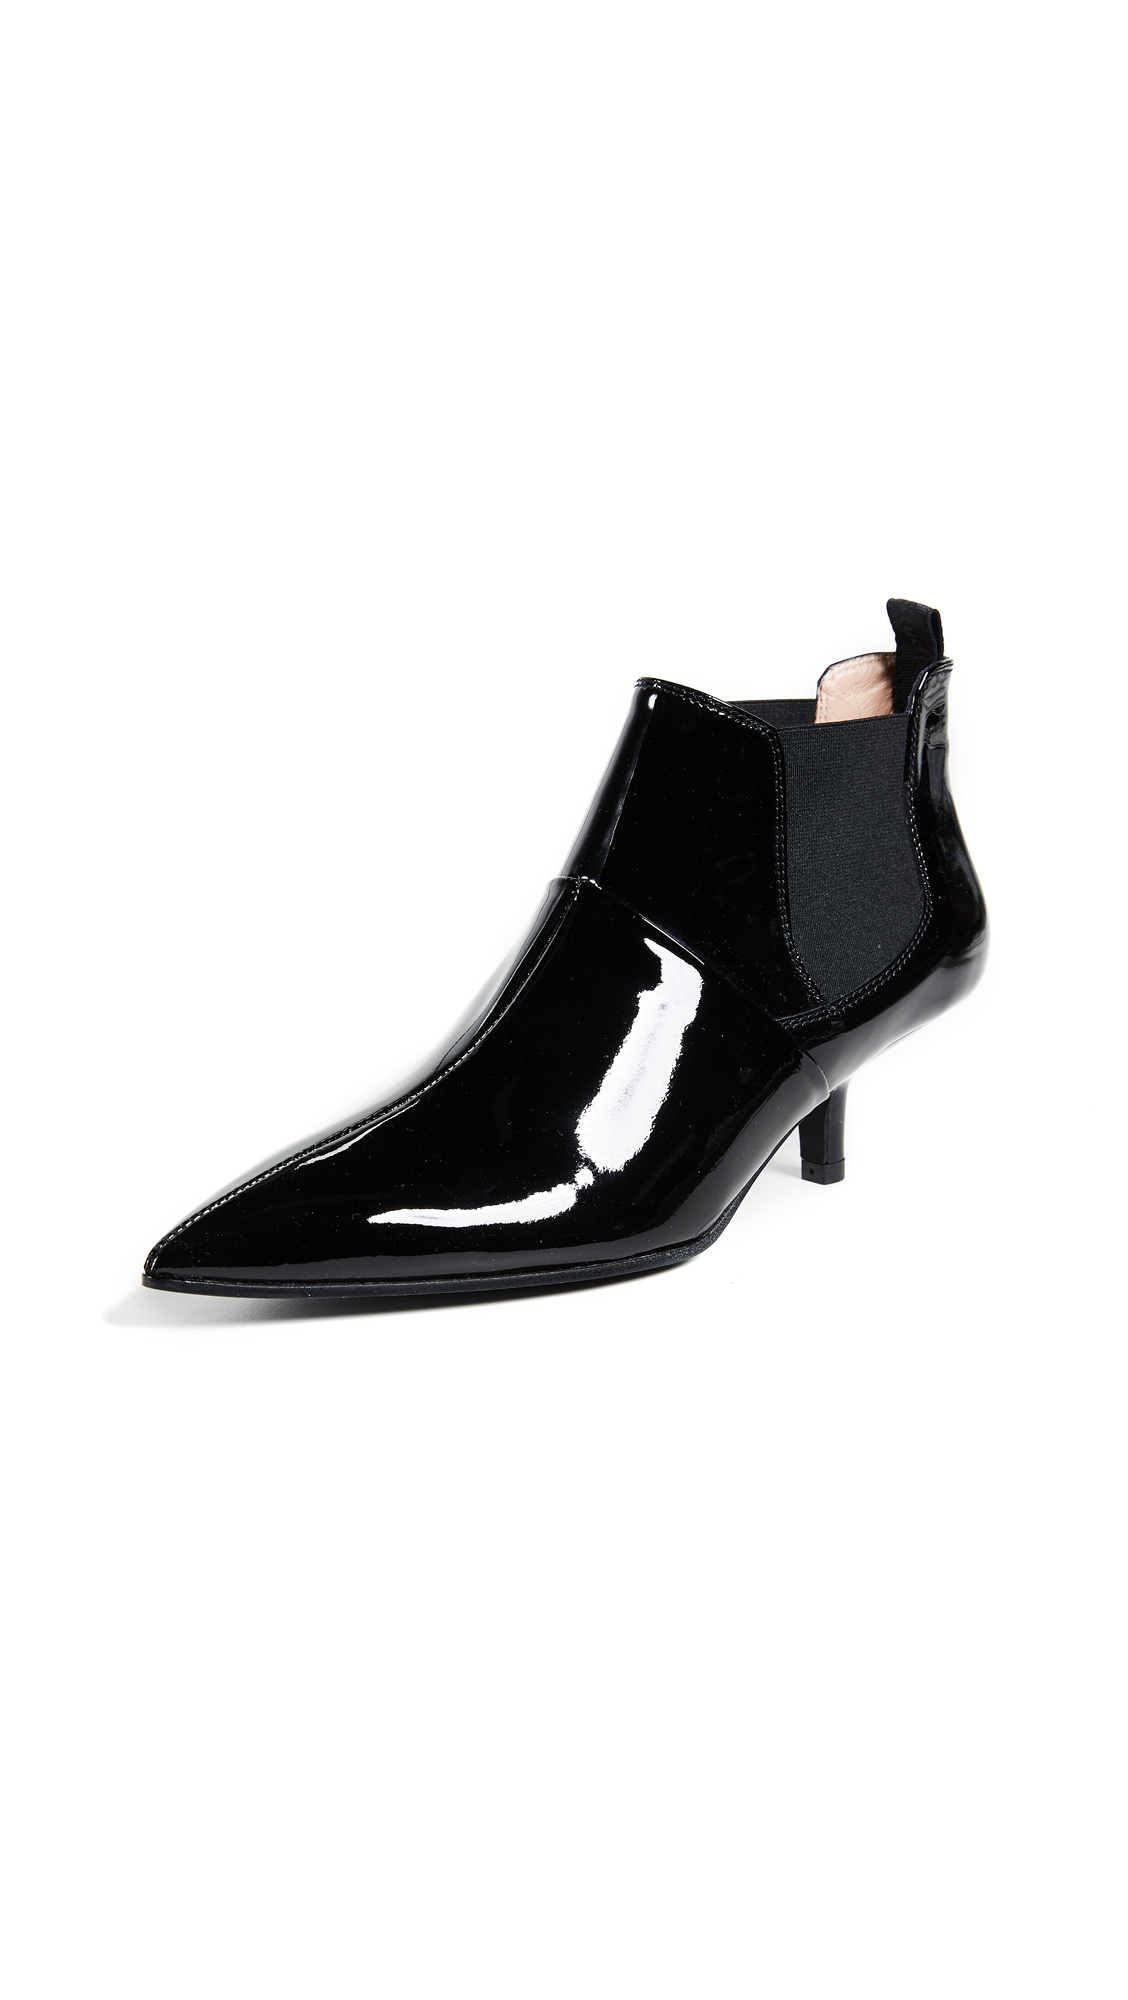 Acne Studios Kity Booties - Black